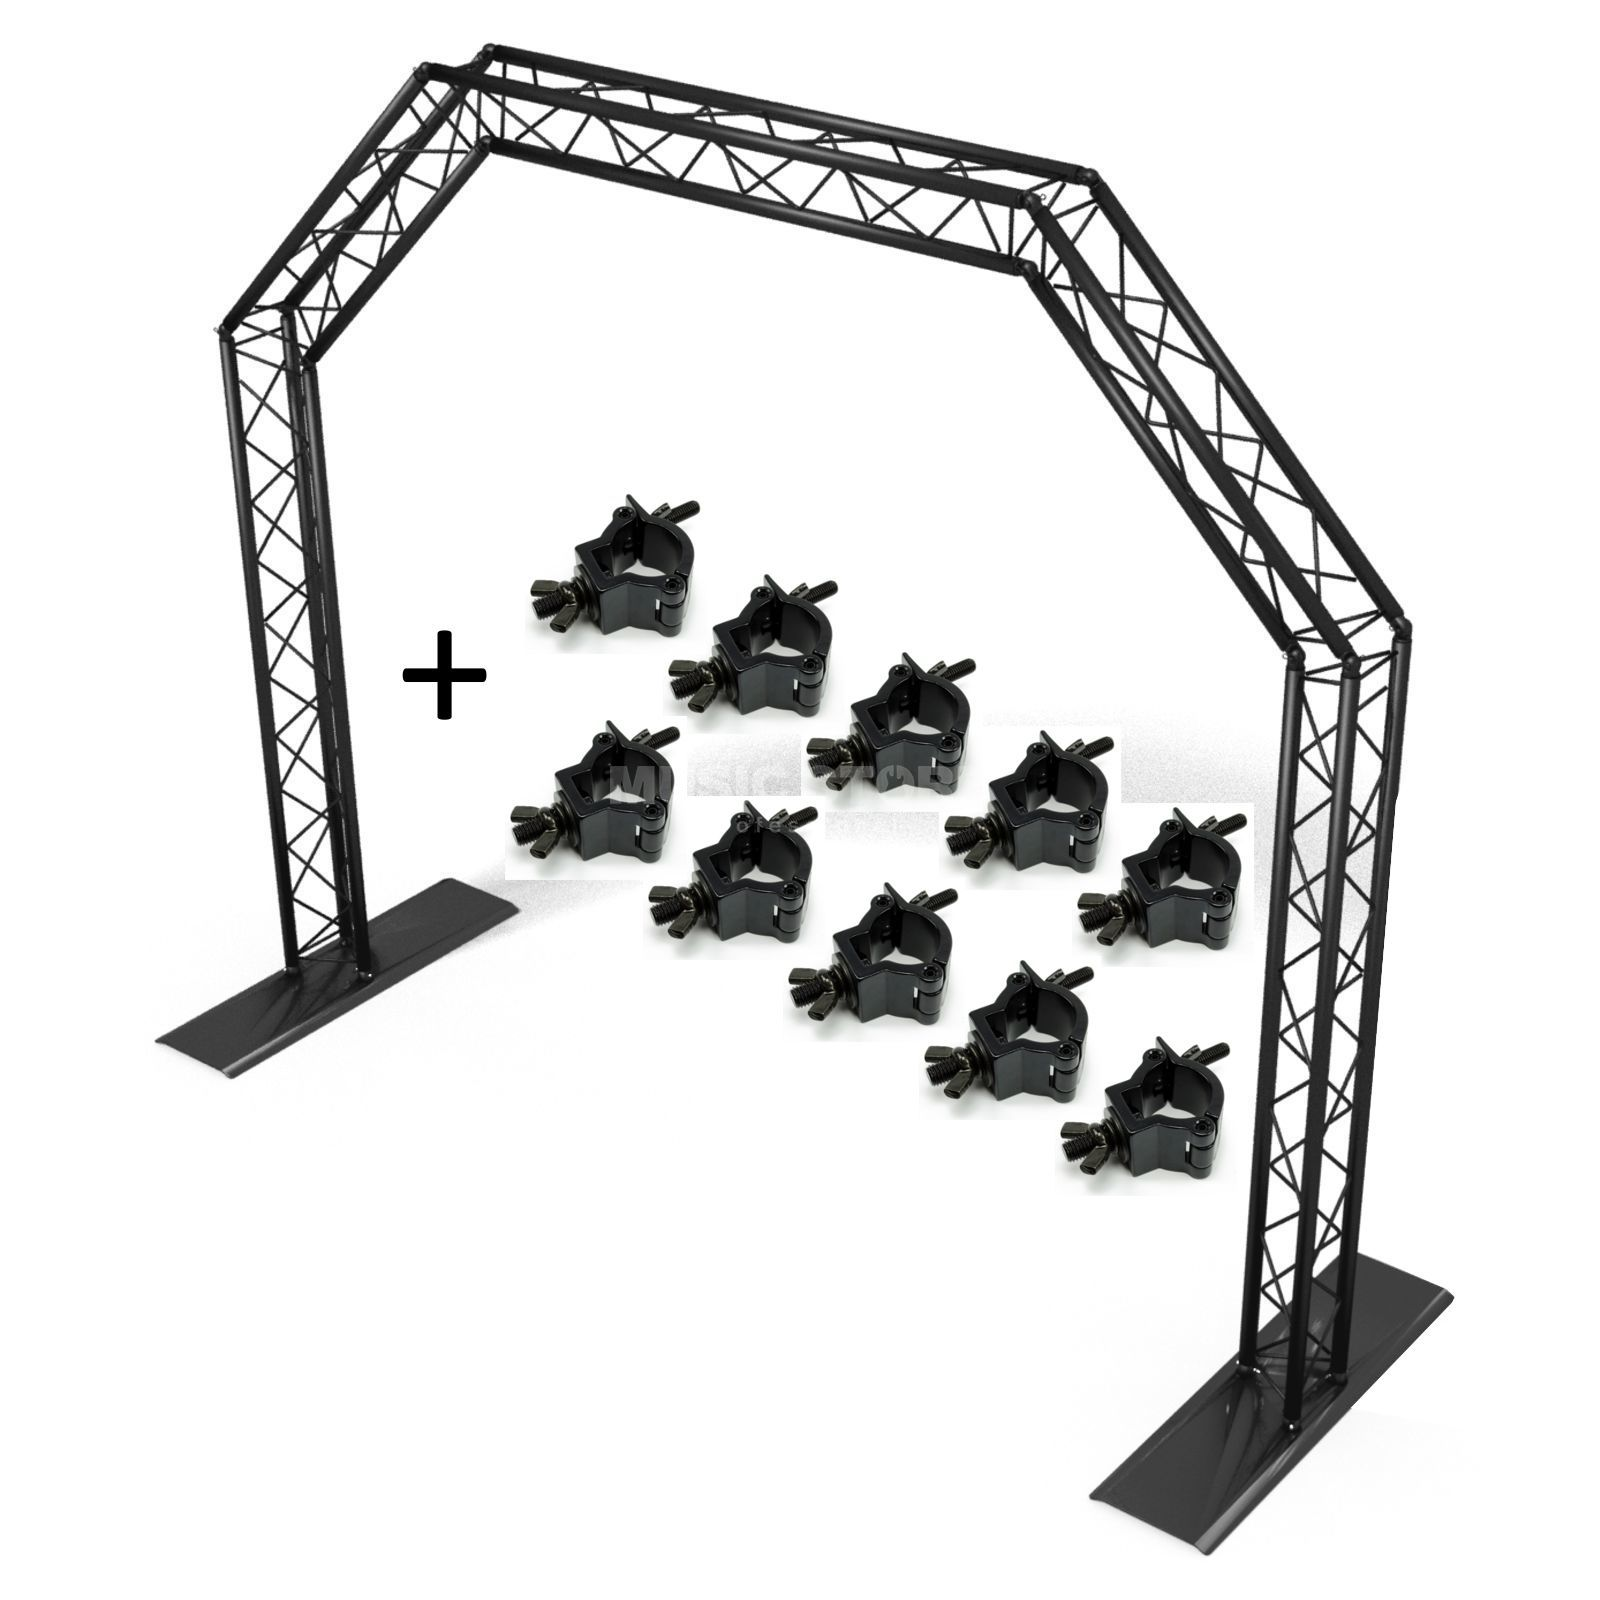 LightmaXX MOBILE DJ TRUSS GATE - Set Product Image